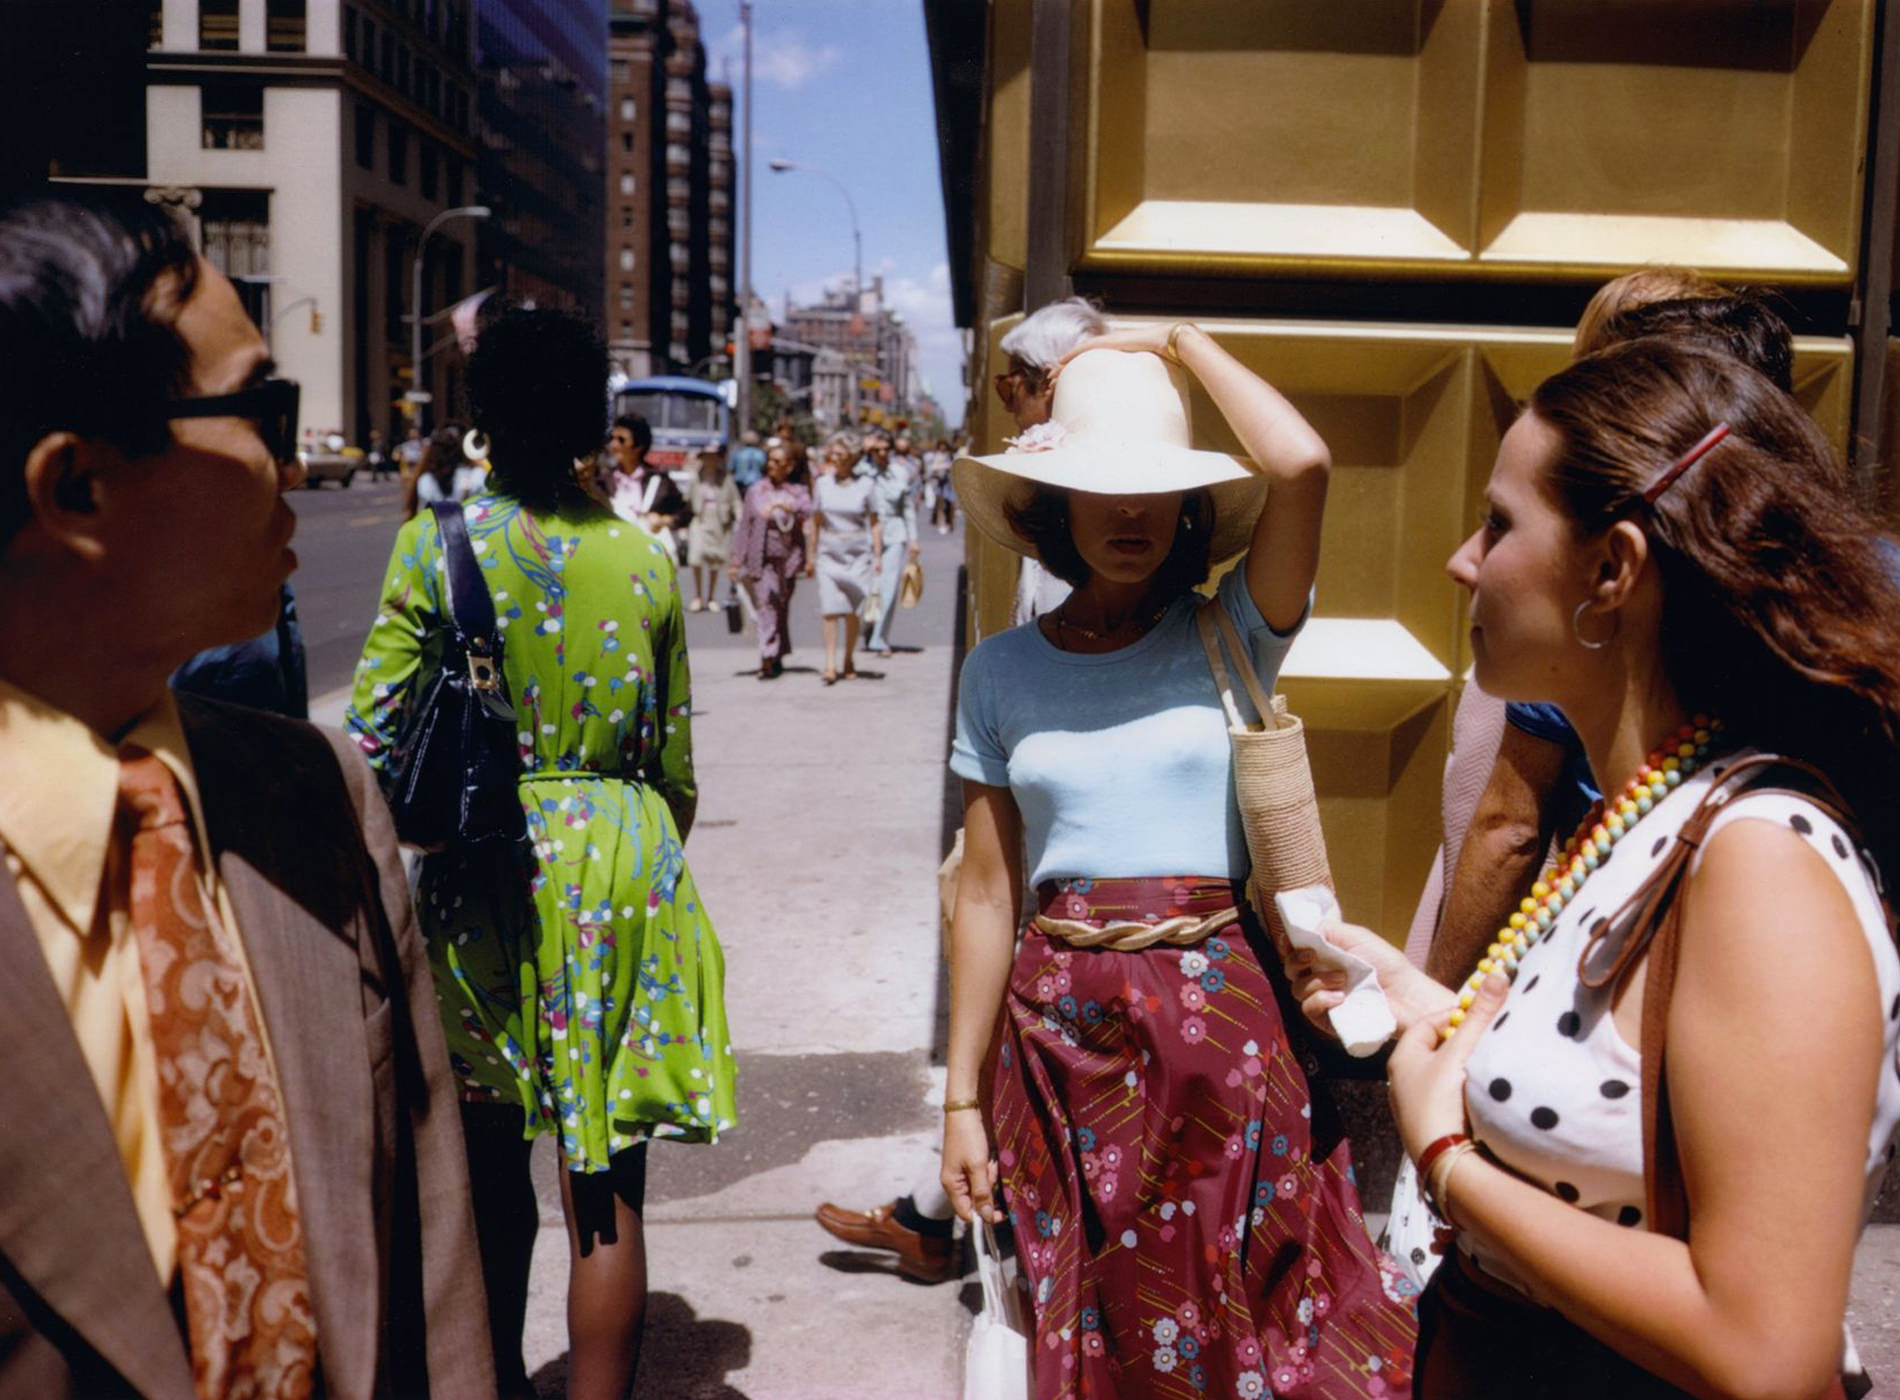 Joel Meyerowitz, Gold Corner, New York City, 1974